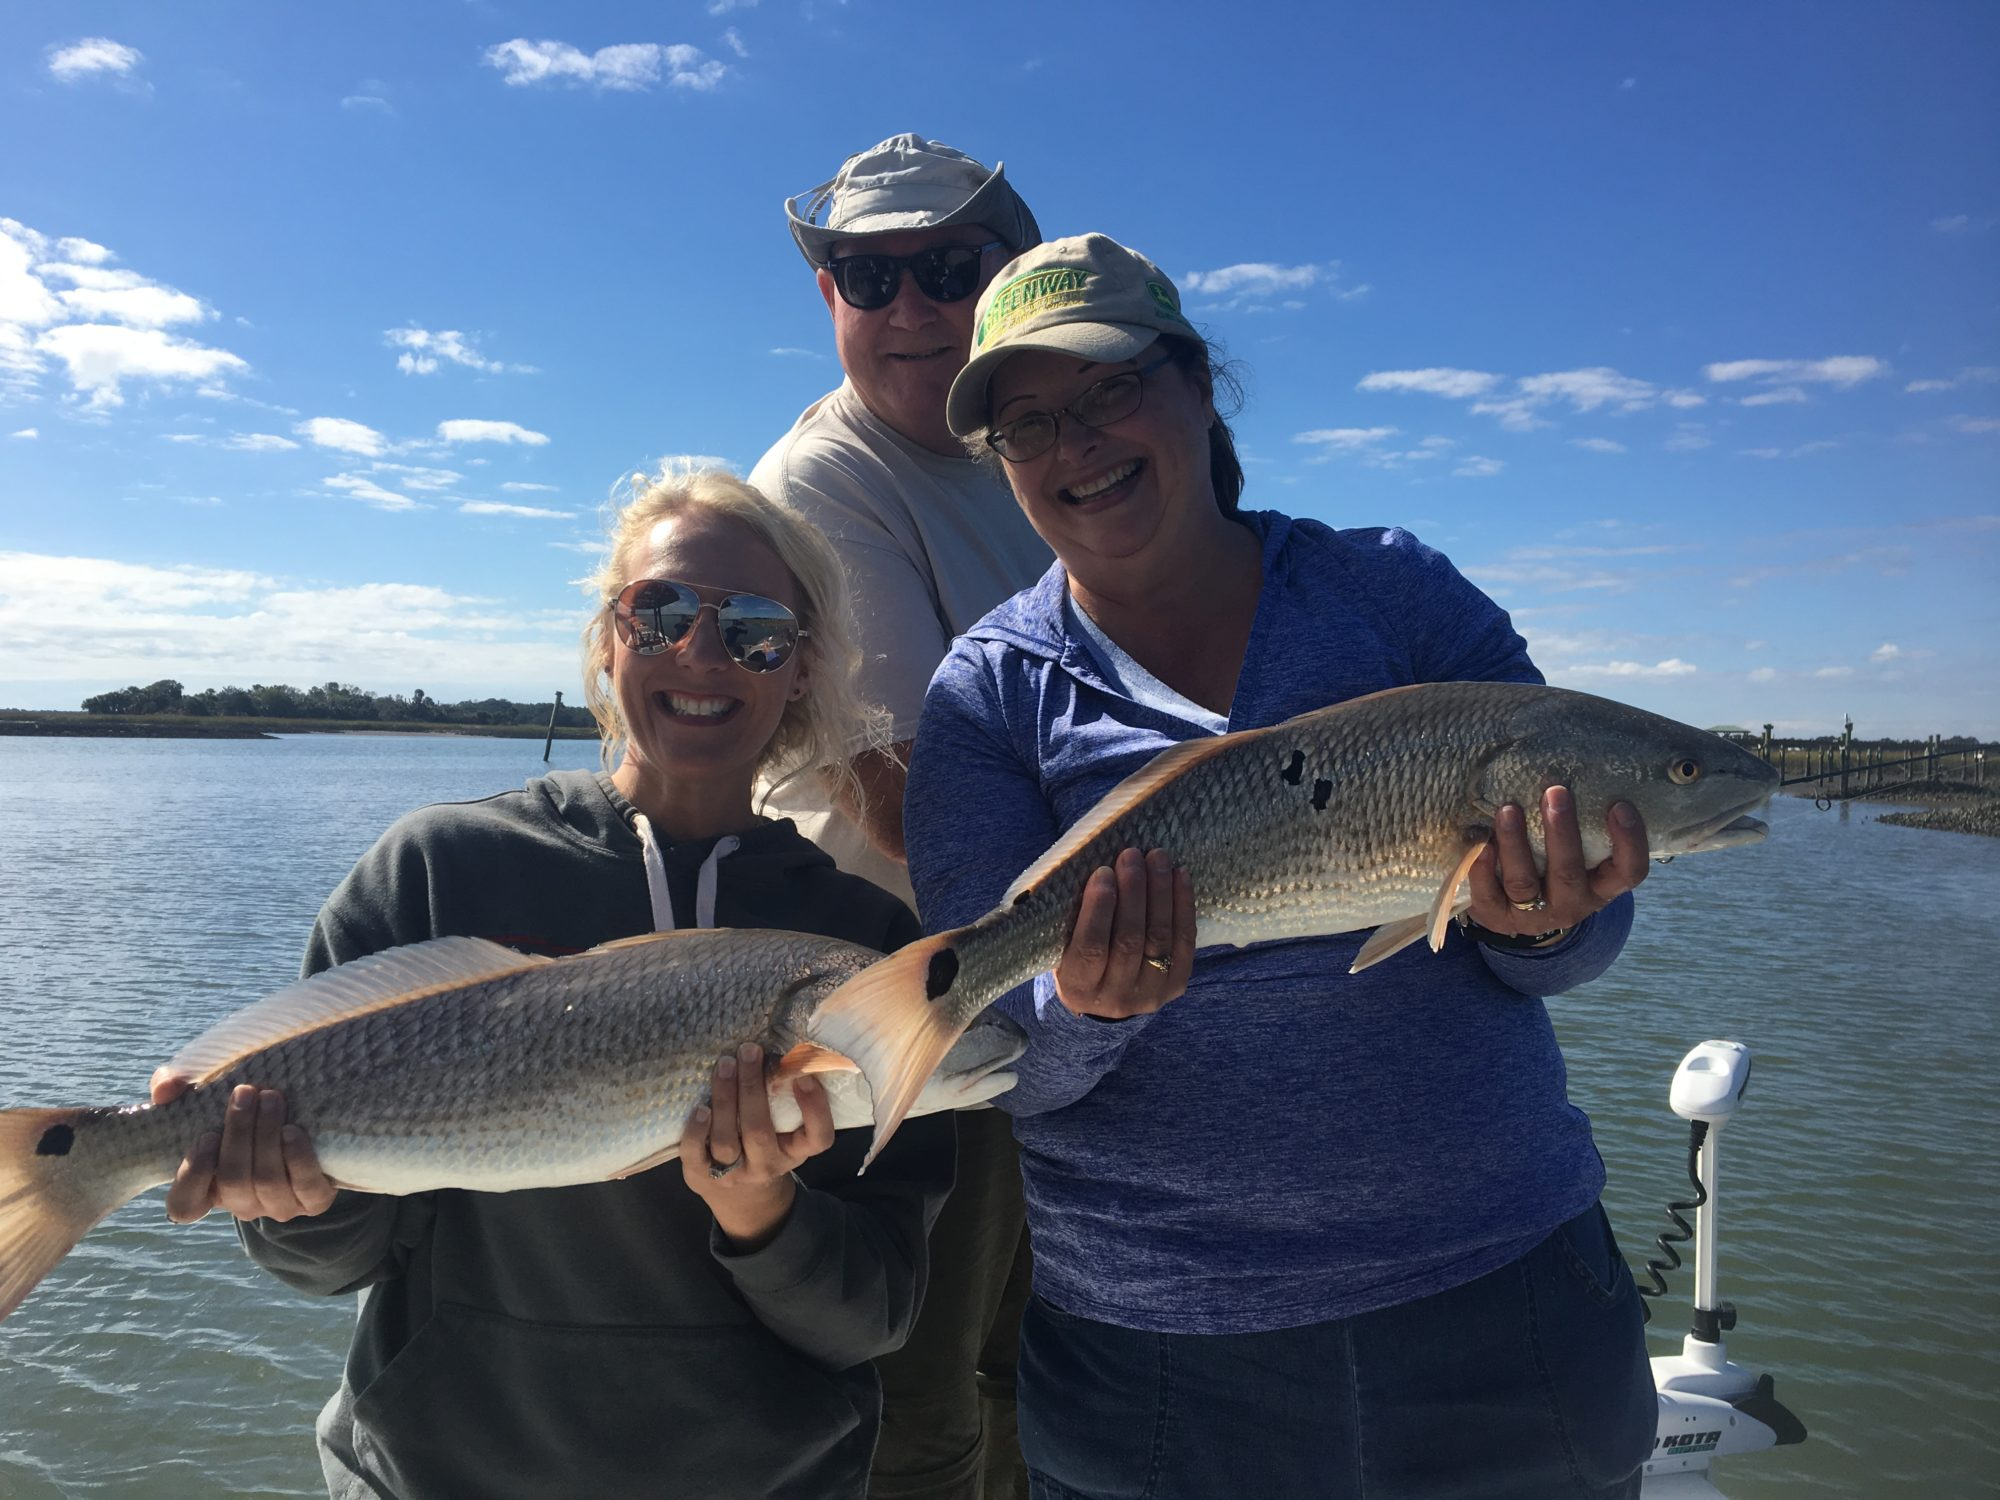 Charleston inshore and offshore fishing report for 11 27 for Deep sea fishing charters charleston sc